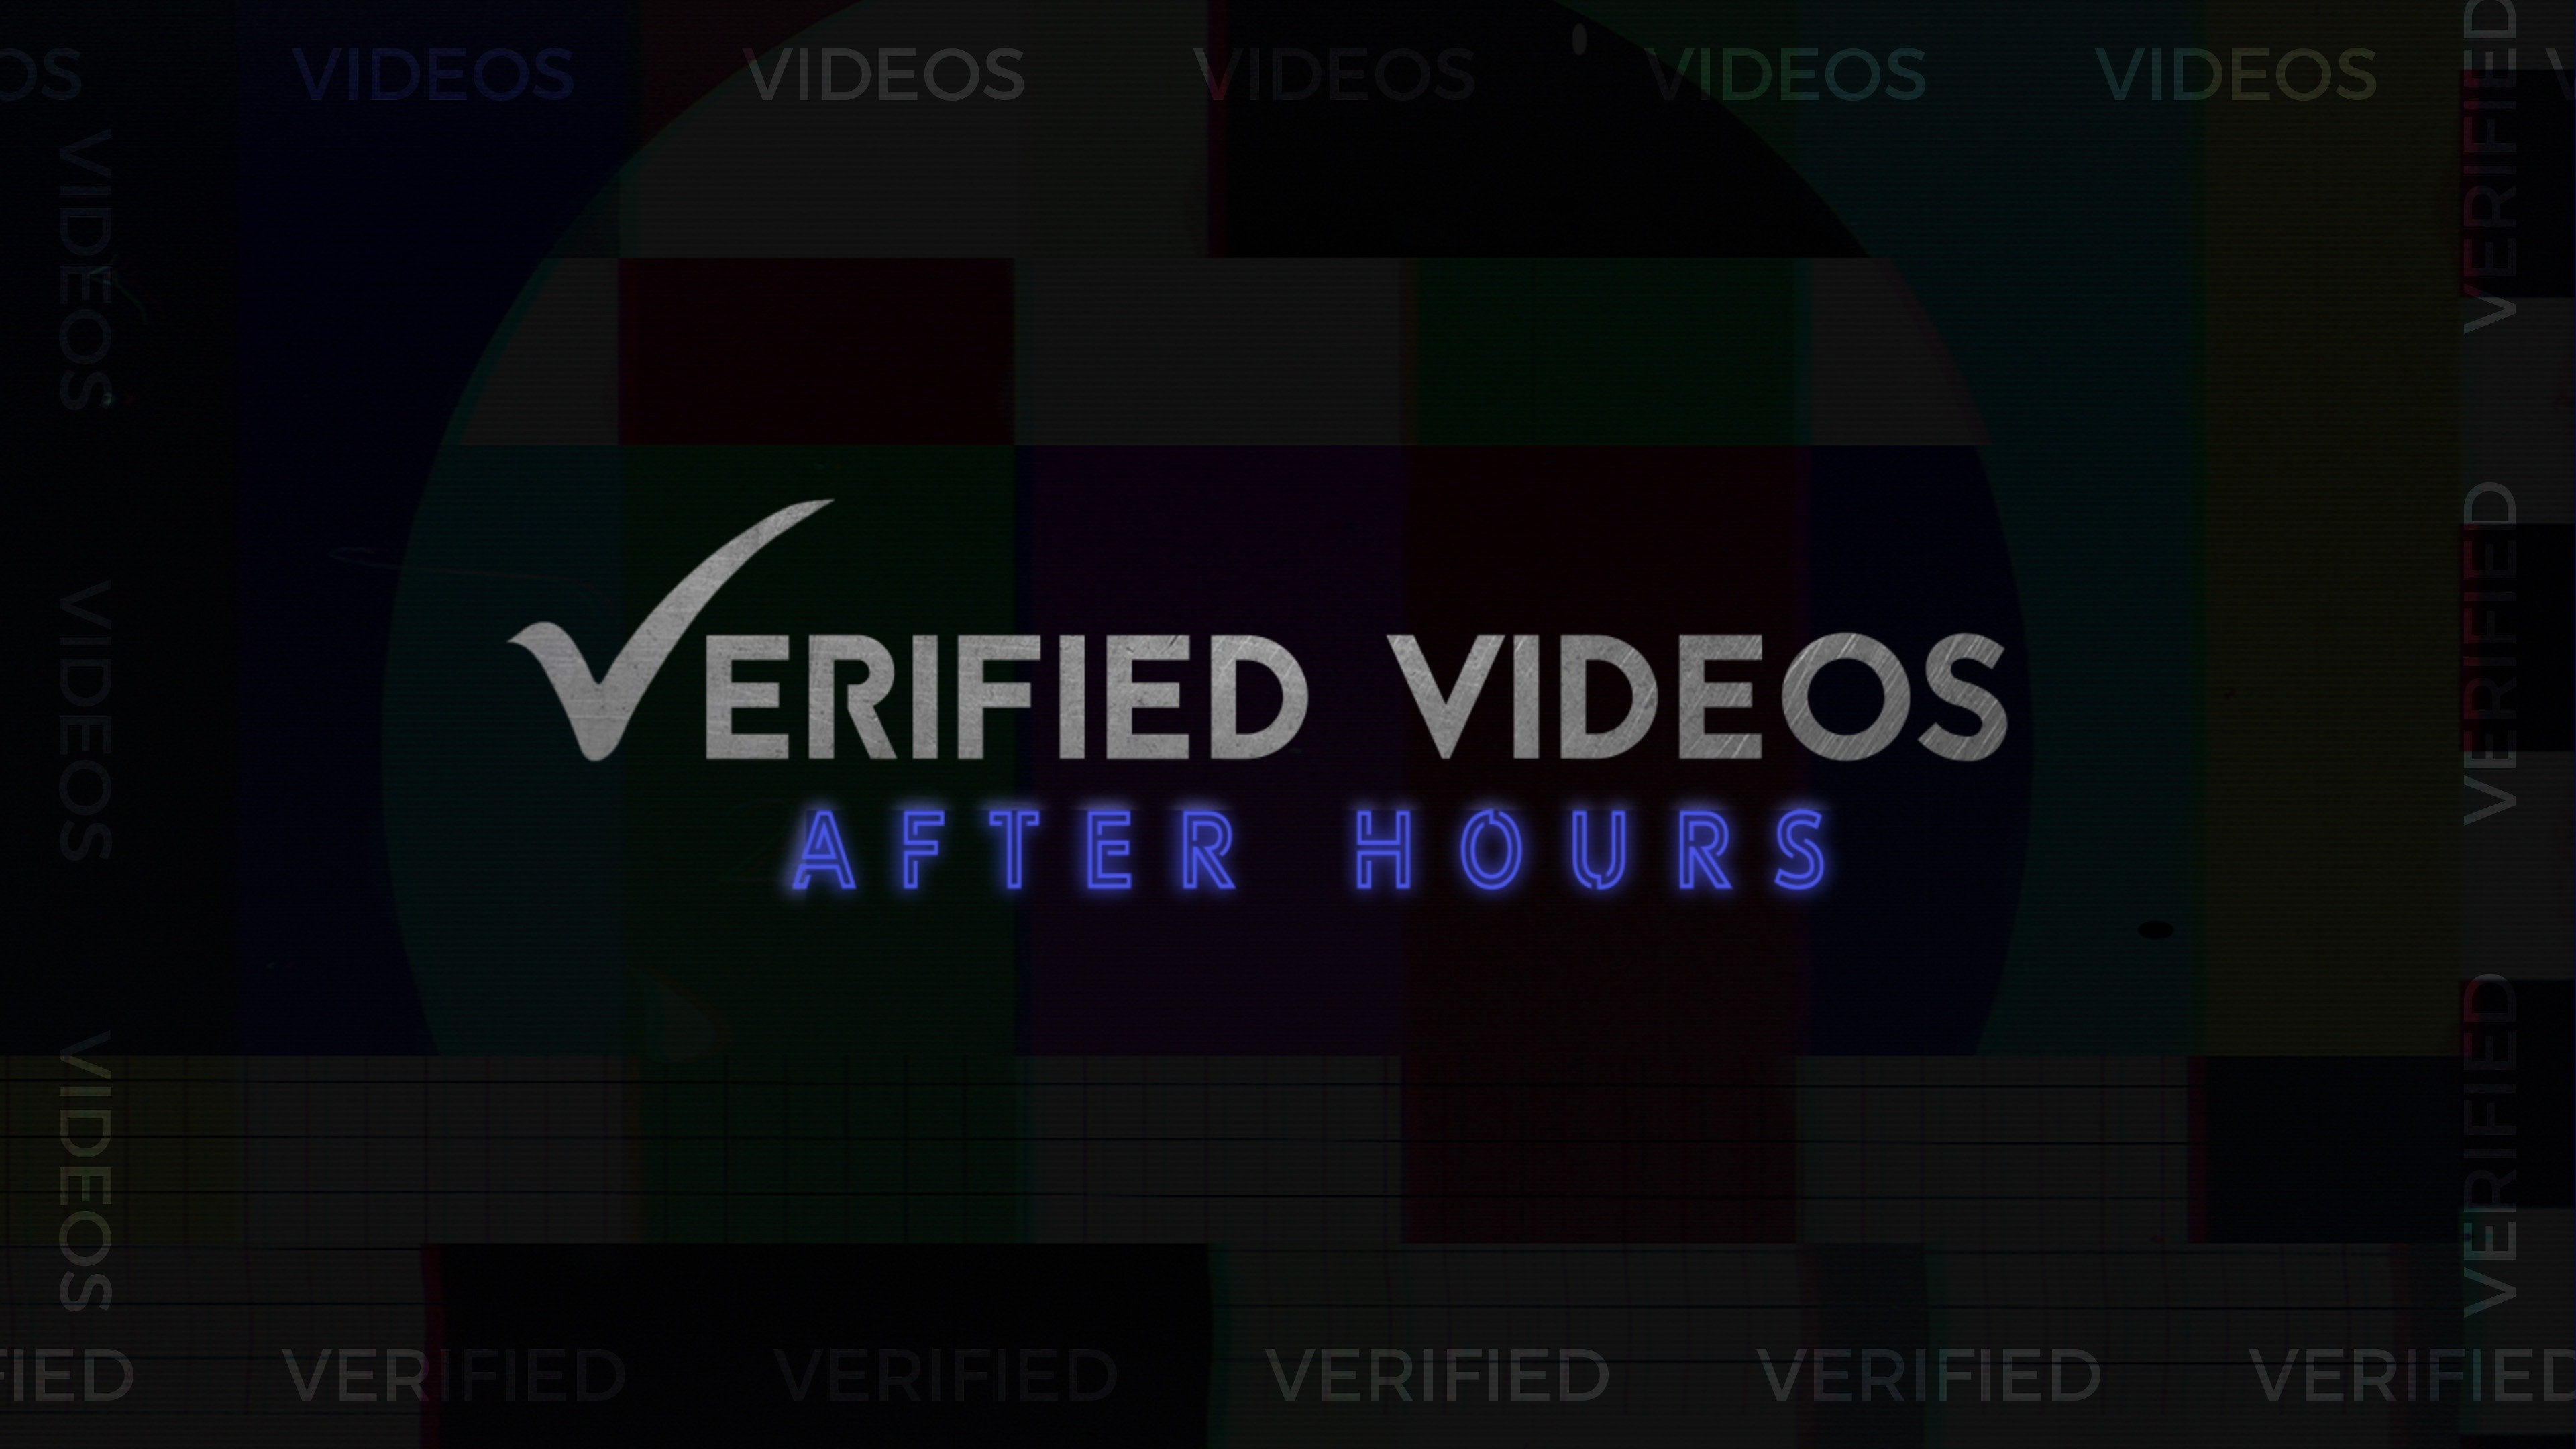 Verified Videos: After Hours